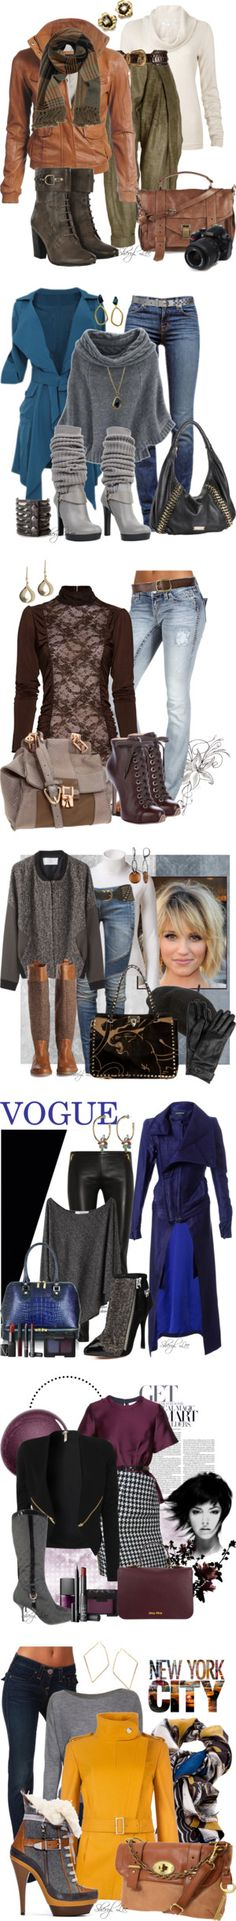 """""""Fall 2012 Fashion"""" by sheryl-lee on Polyvore"""